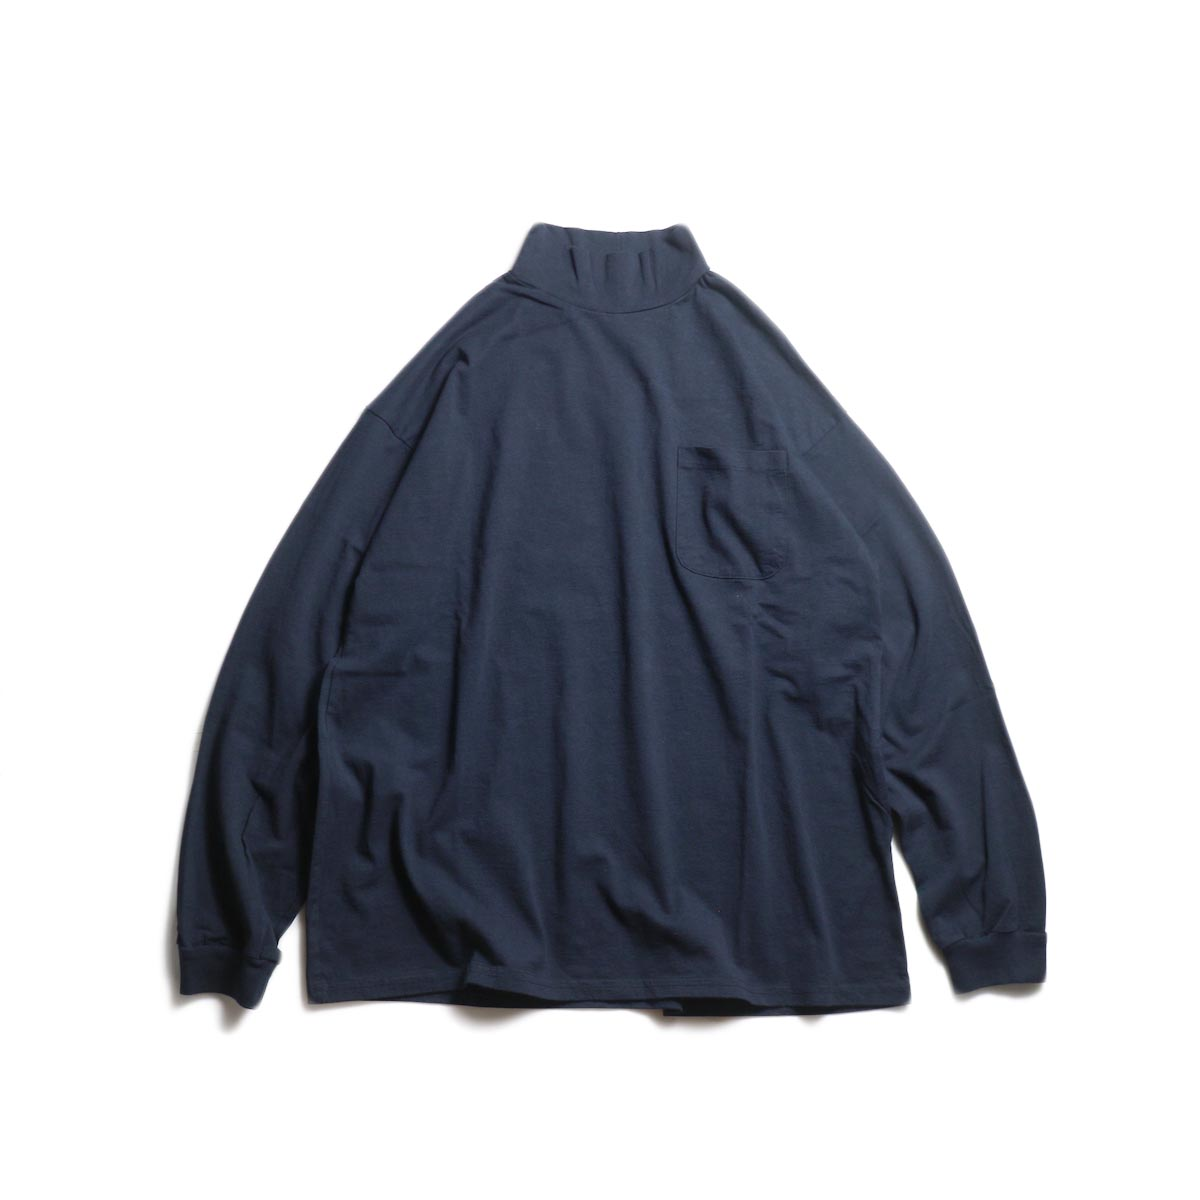 UNIVERSAL PRODUCTS / HEAVY WEIGHT L/S MOCK NECK T-SHIRT (Navy)